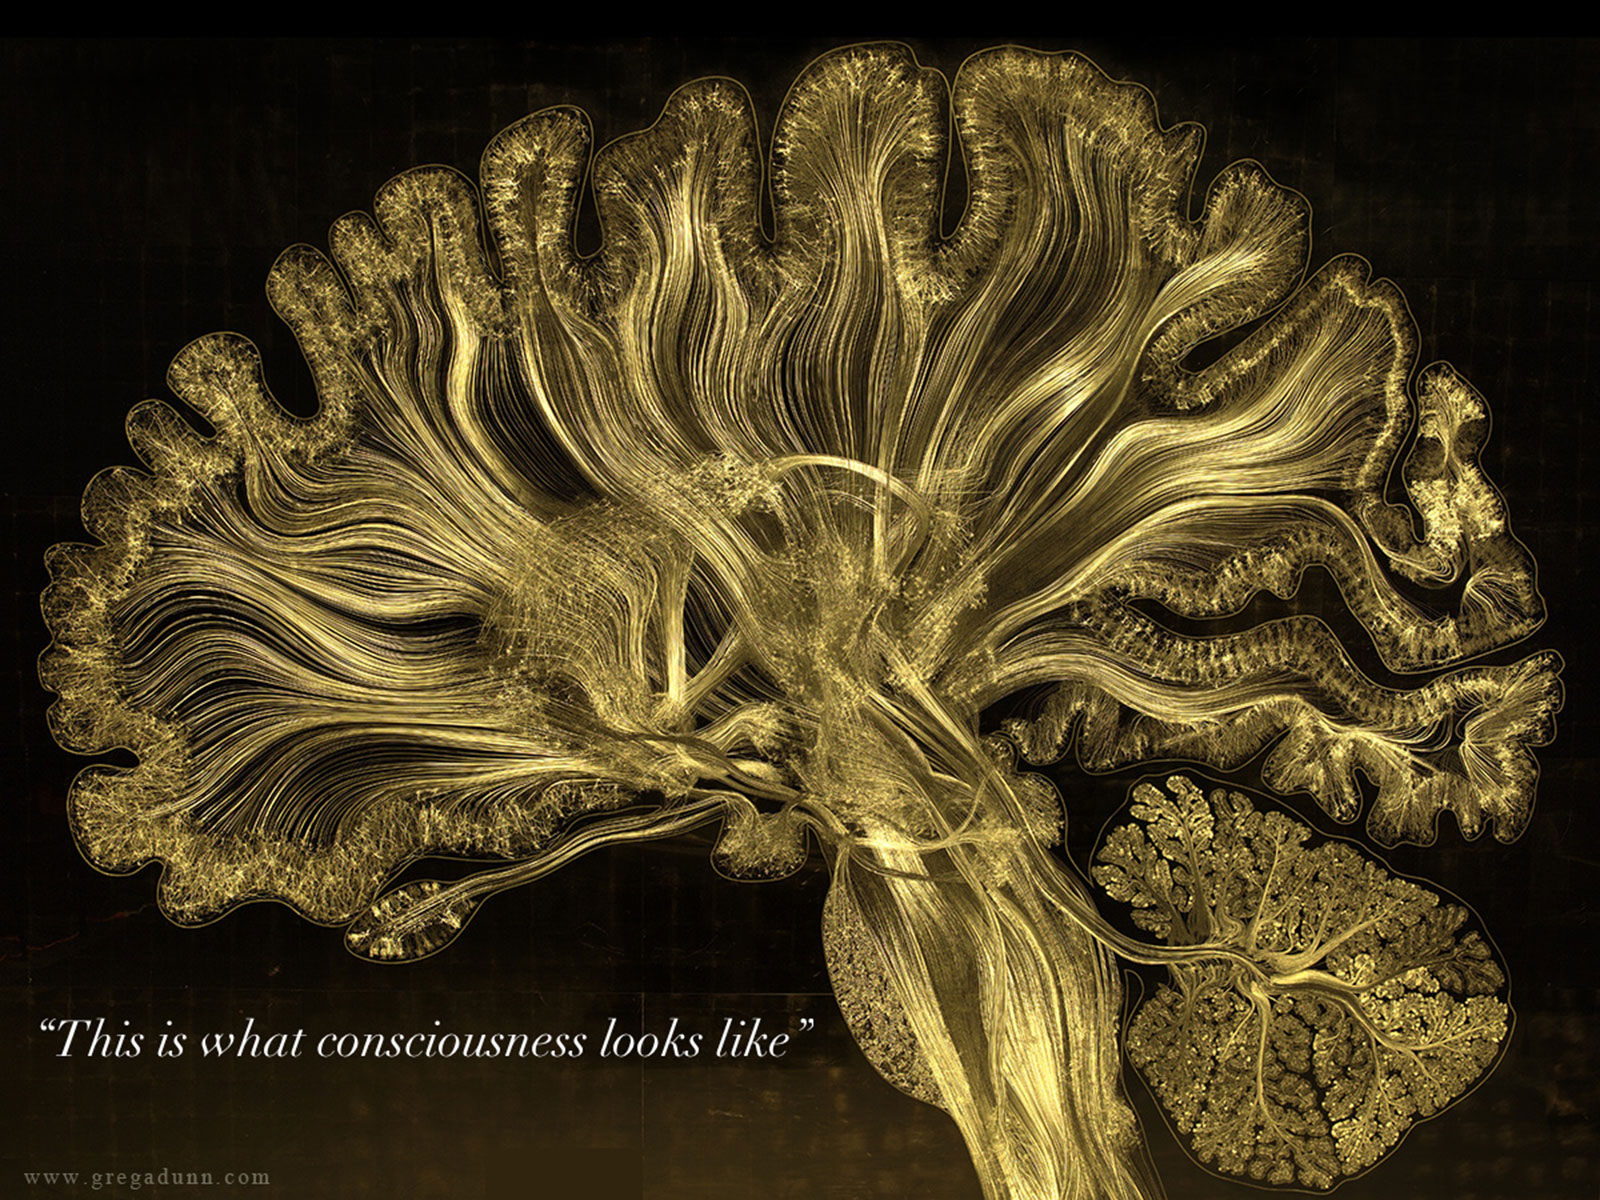 Image what-consciousness-looks-like